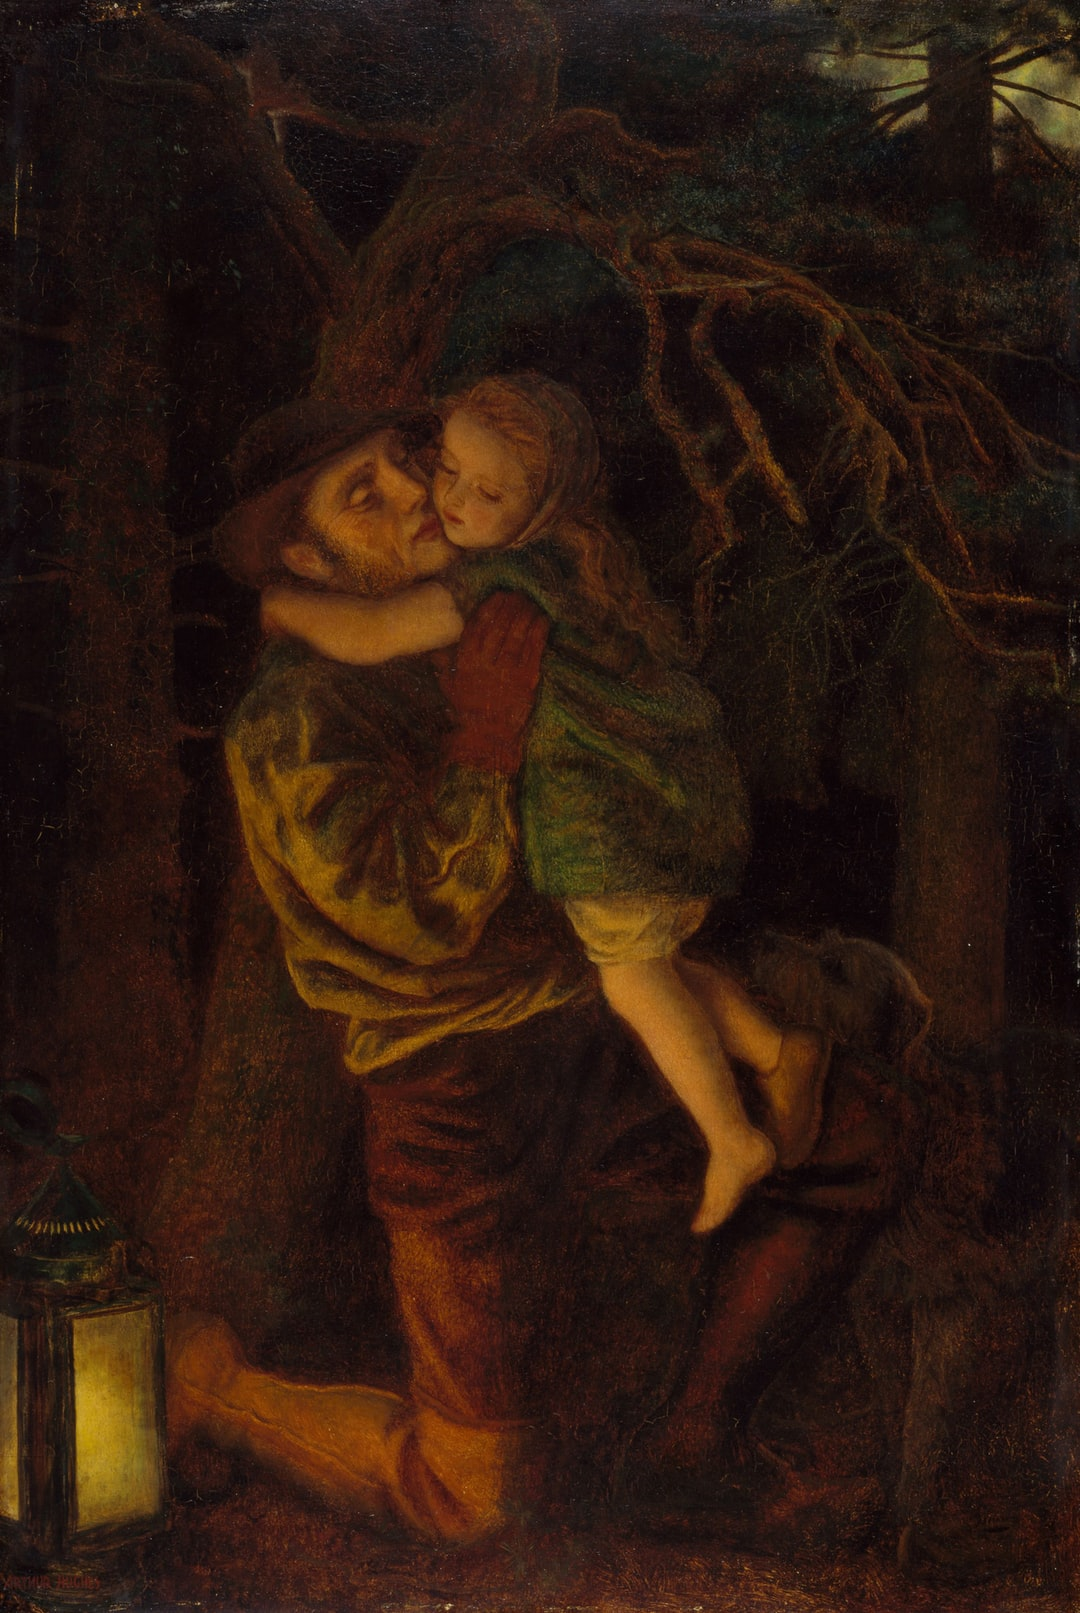 The Lost Child, 1866. By Arthur Hughes